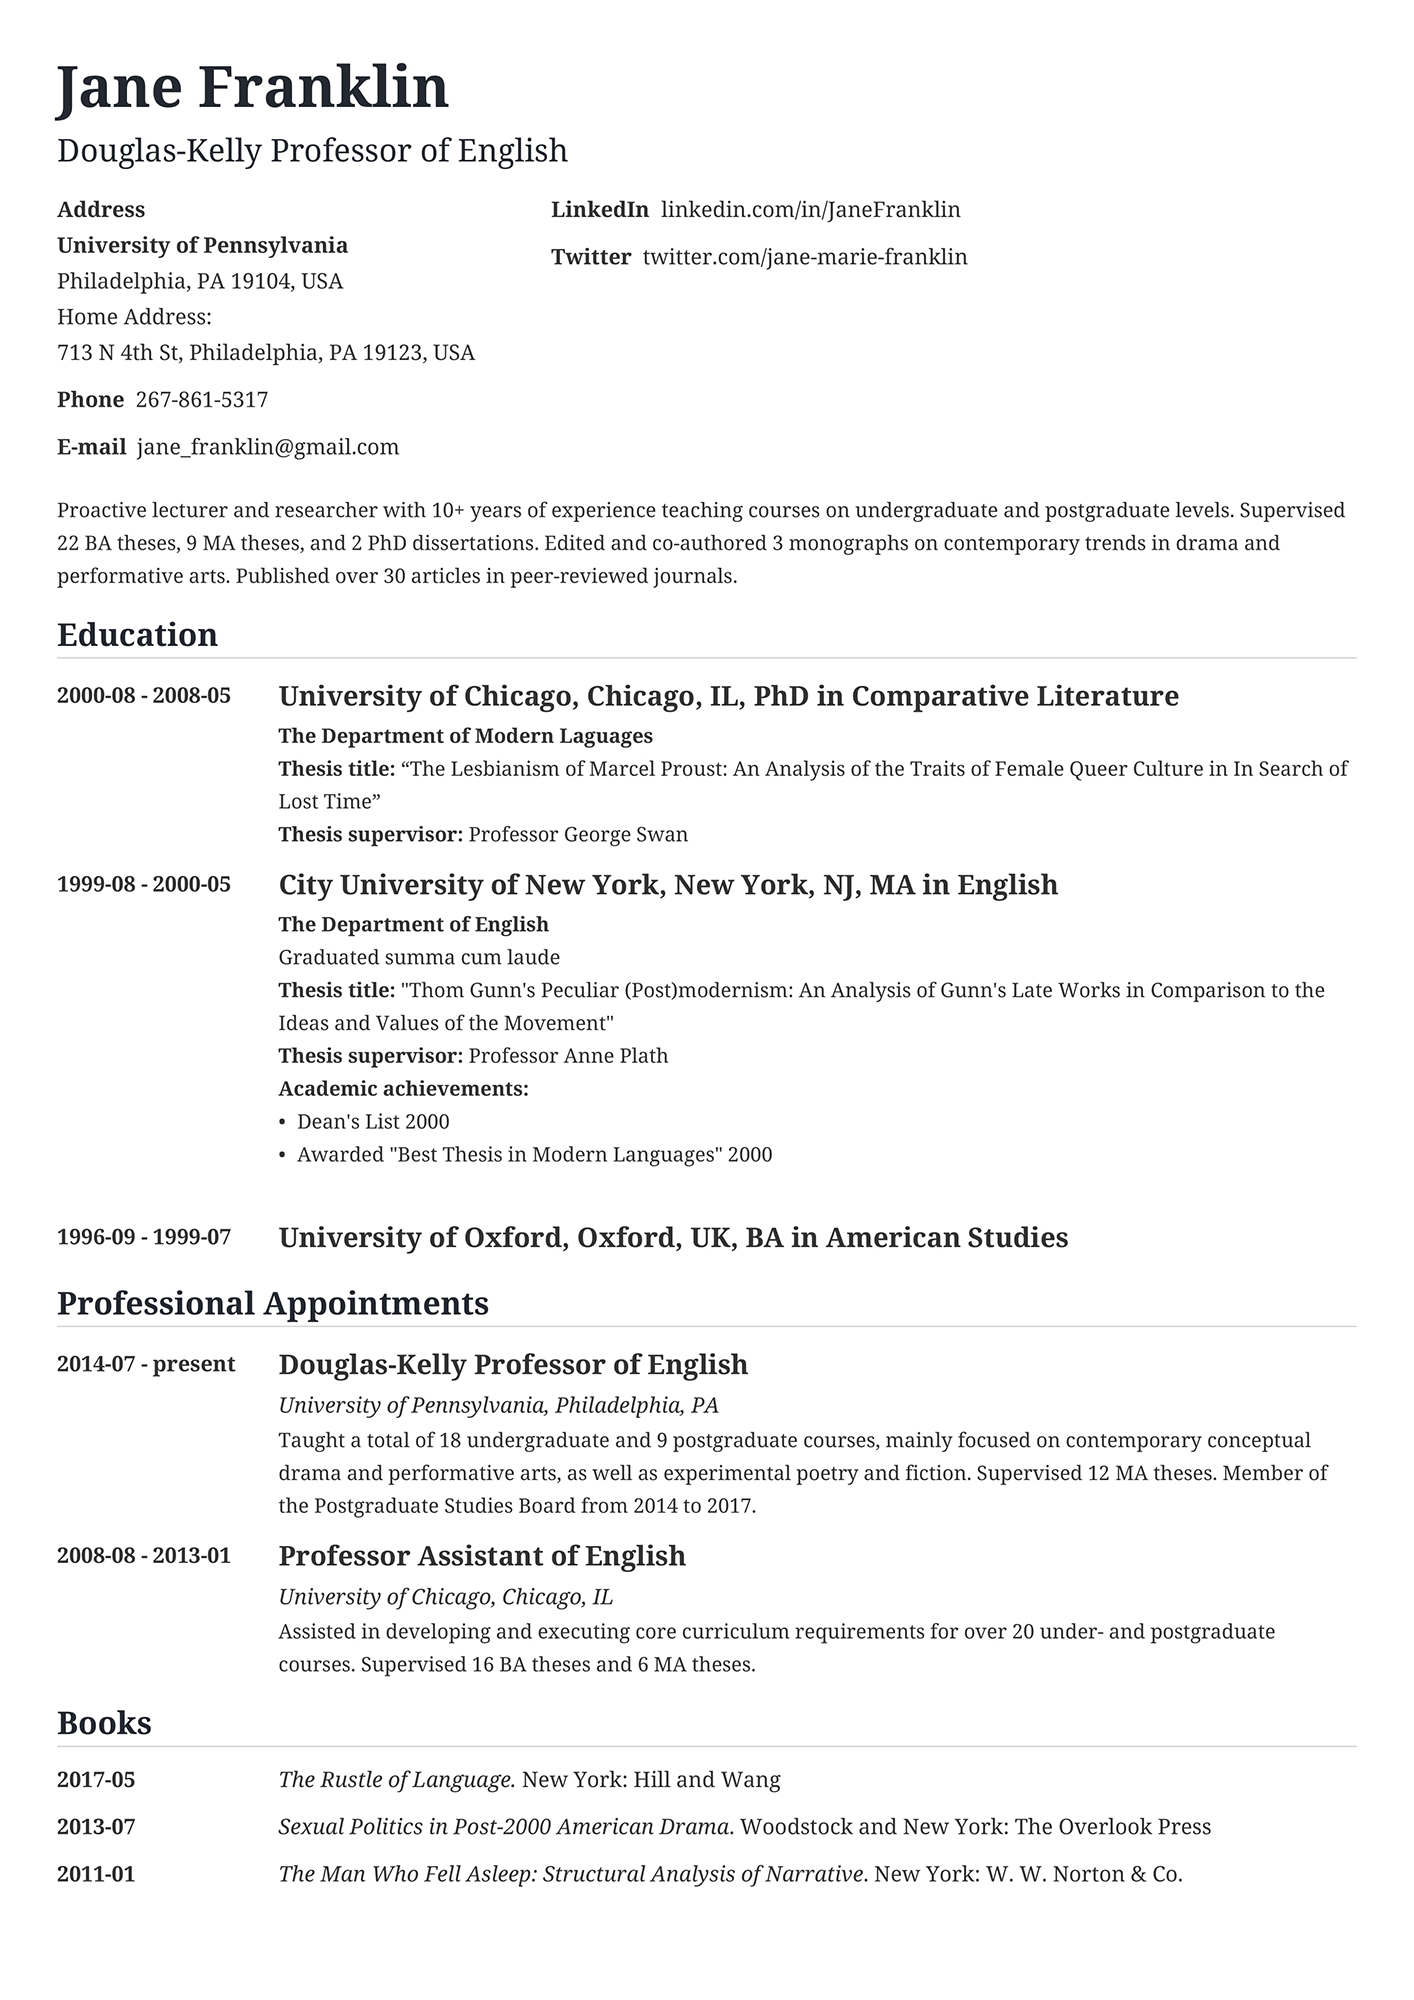 Example of an academic CV